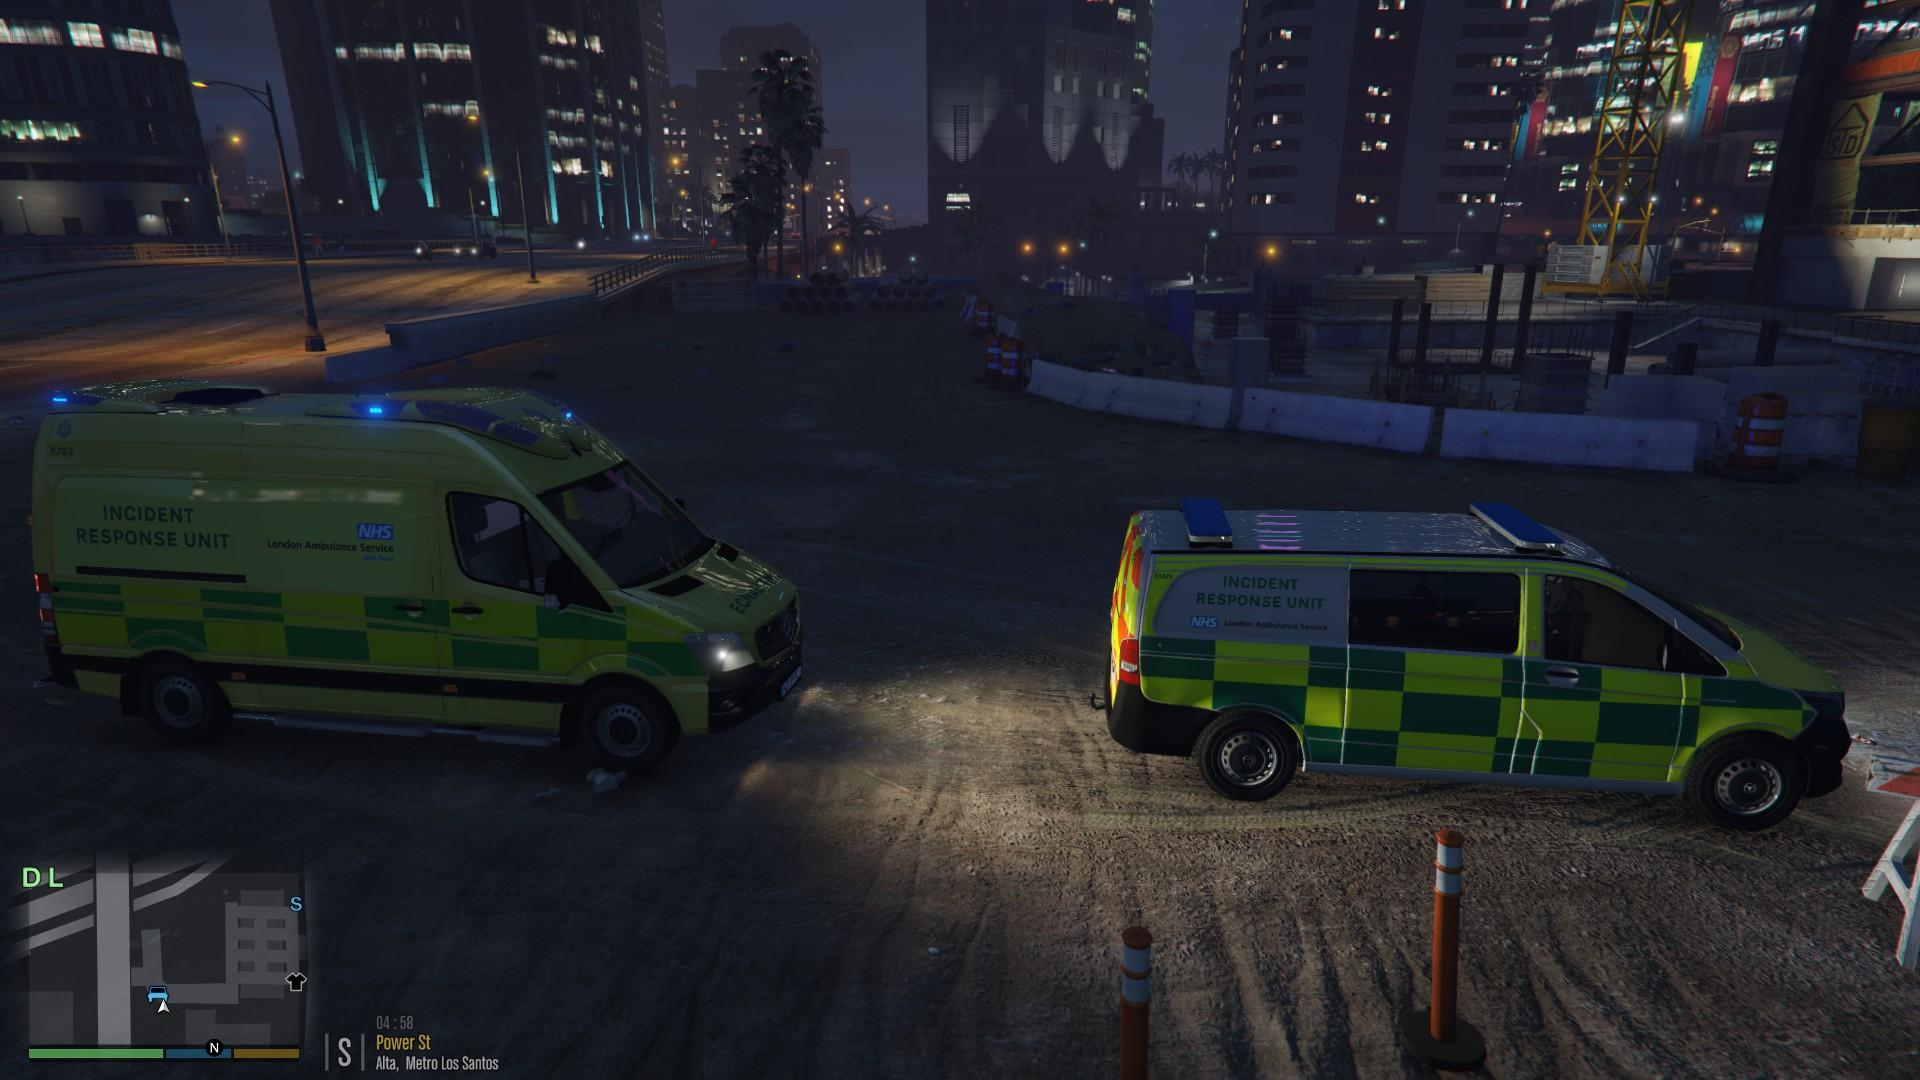 London Ambulance Service Mercedes-Benz Sprinter Incident Response Unit - GTA5-Mods.com